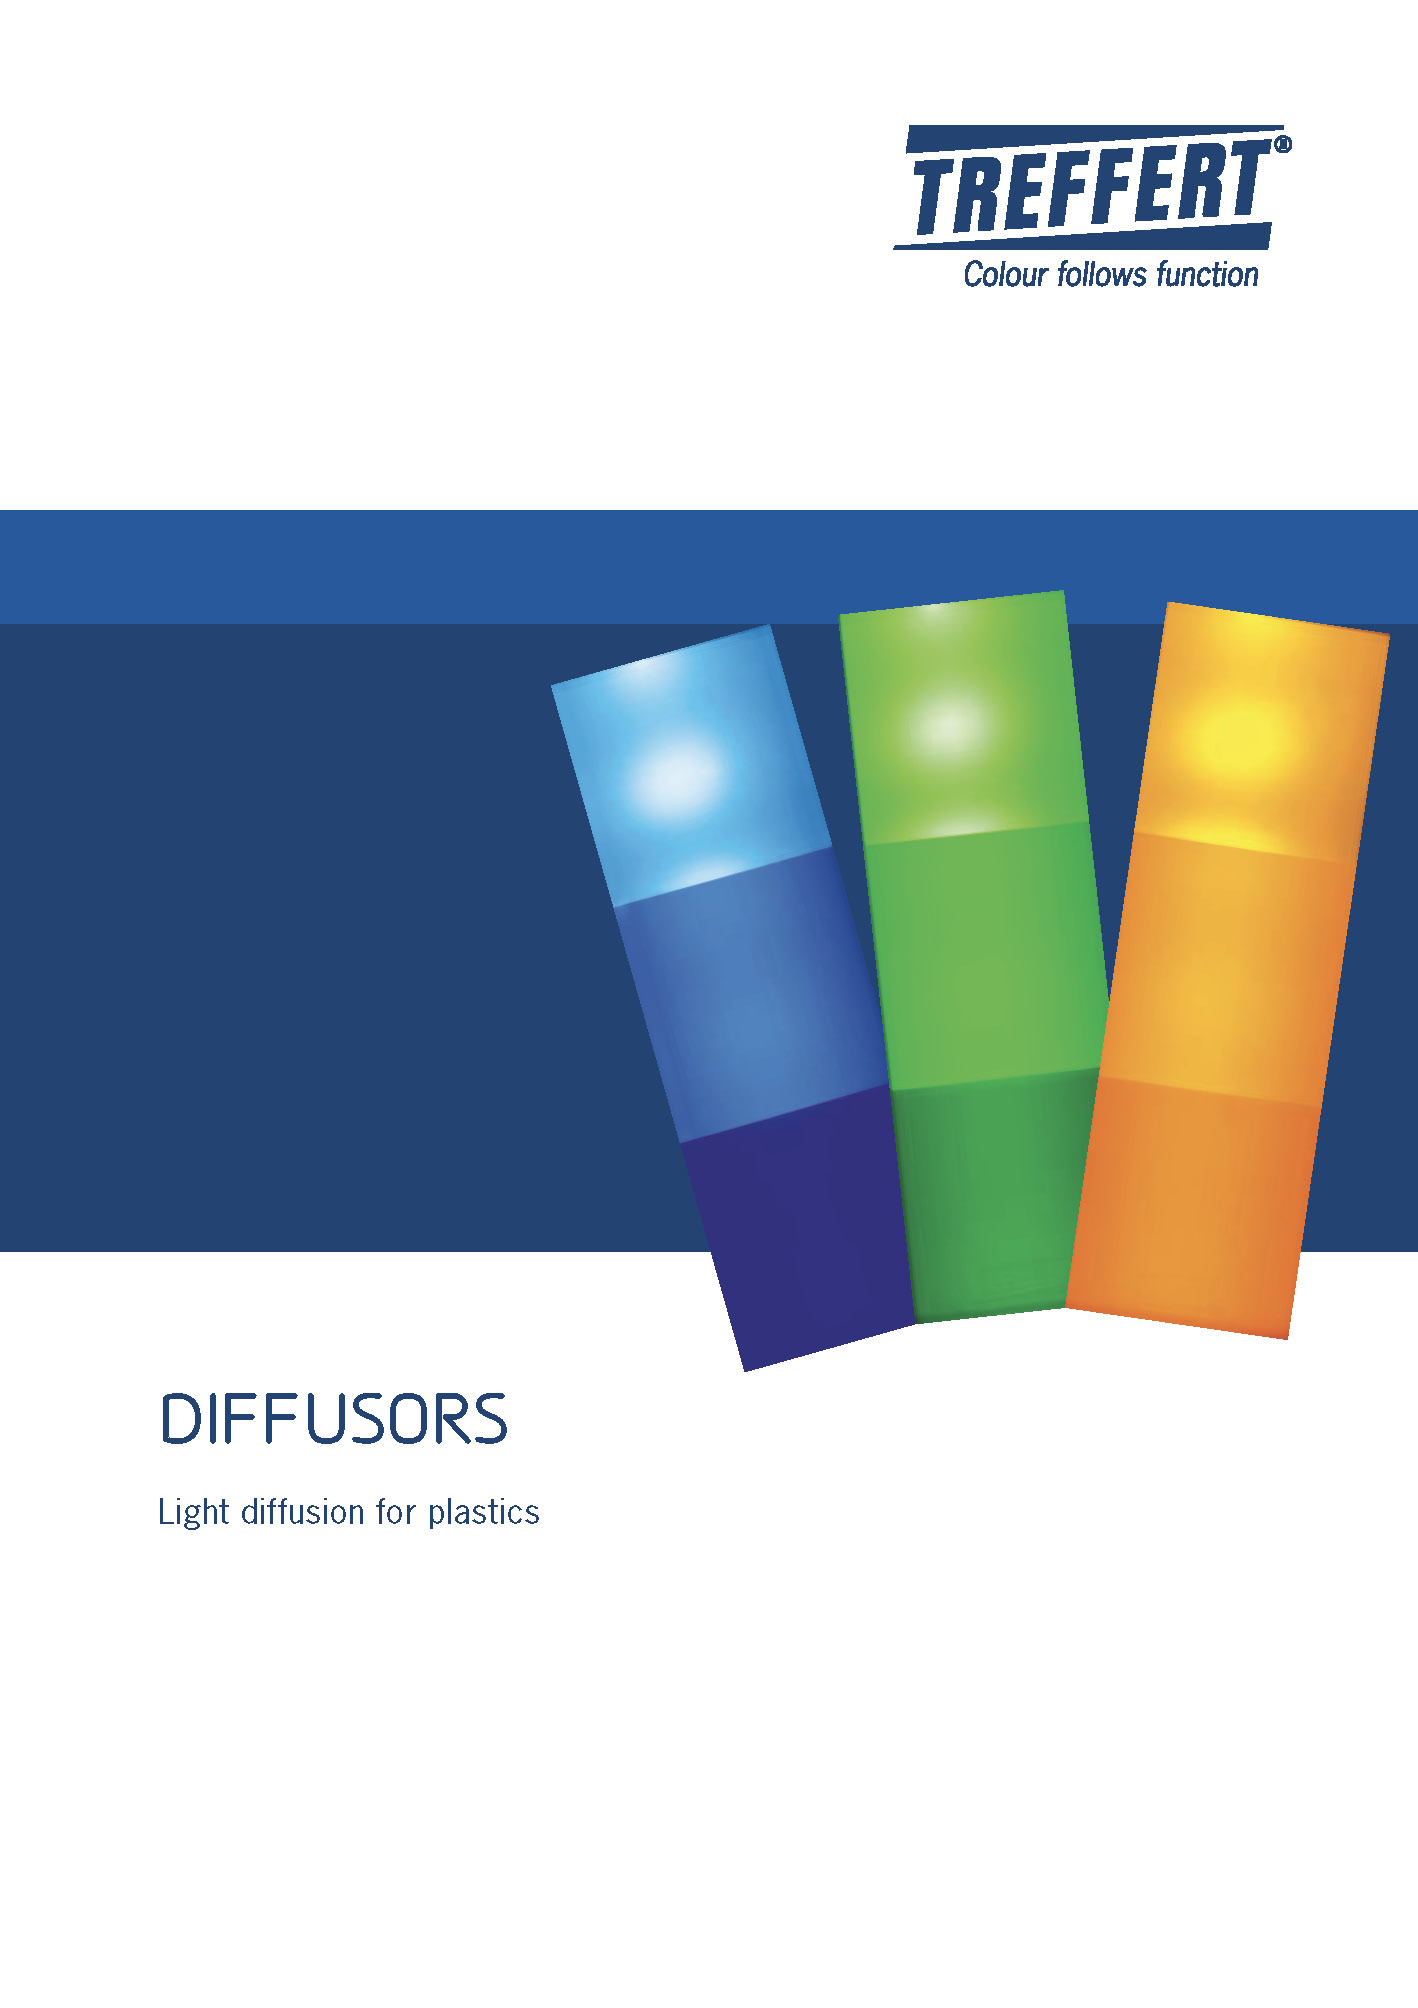 Treffert brochure about diffusors - Light diffusion for plastics